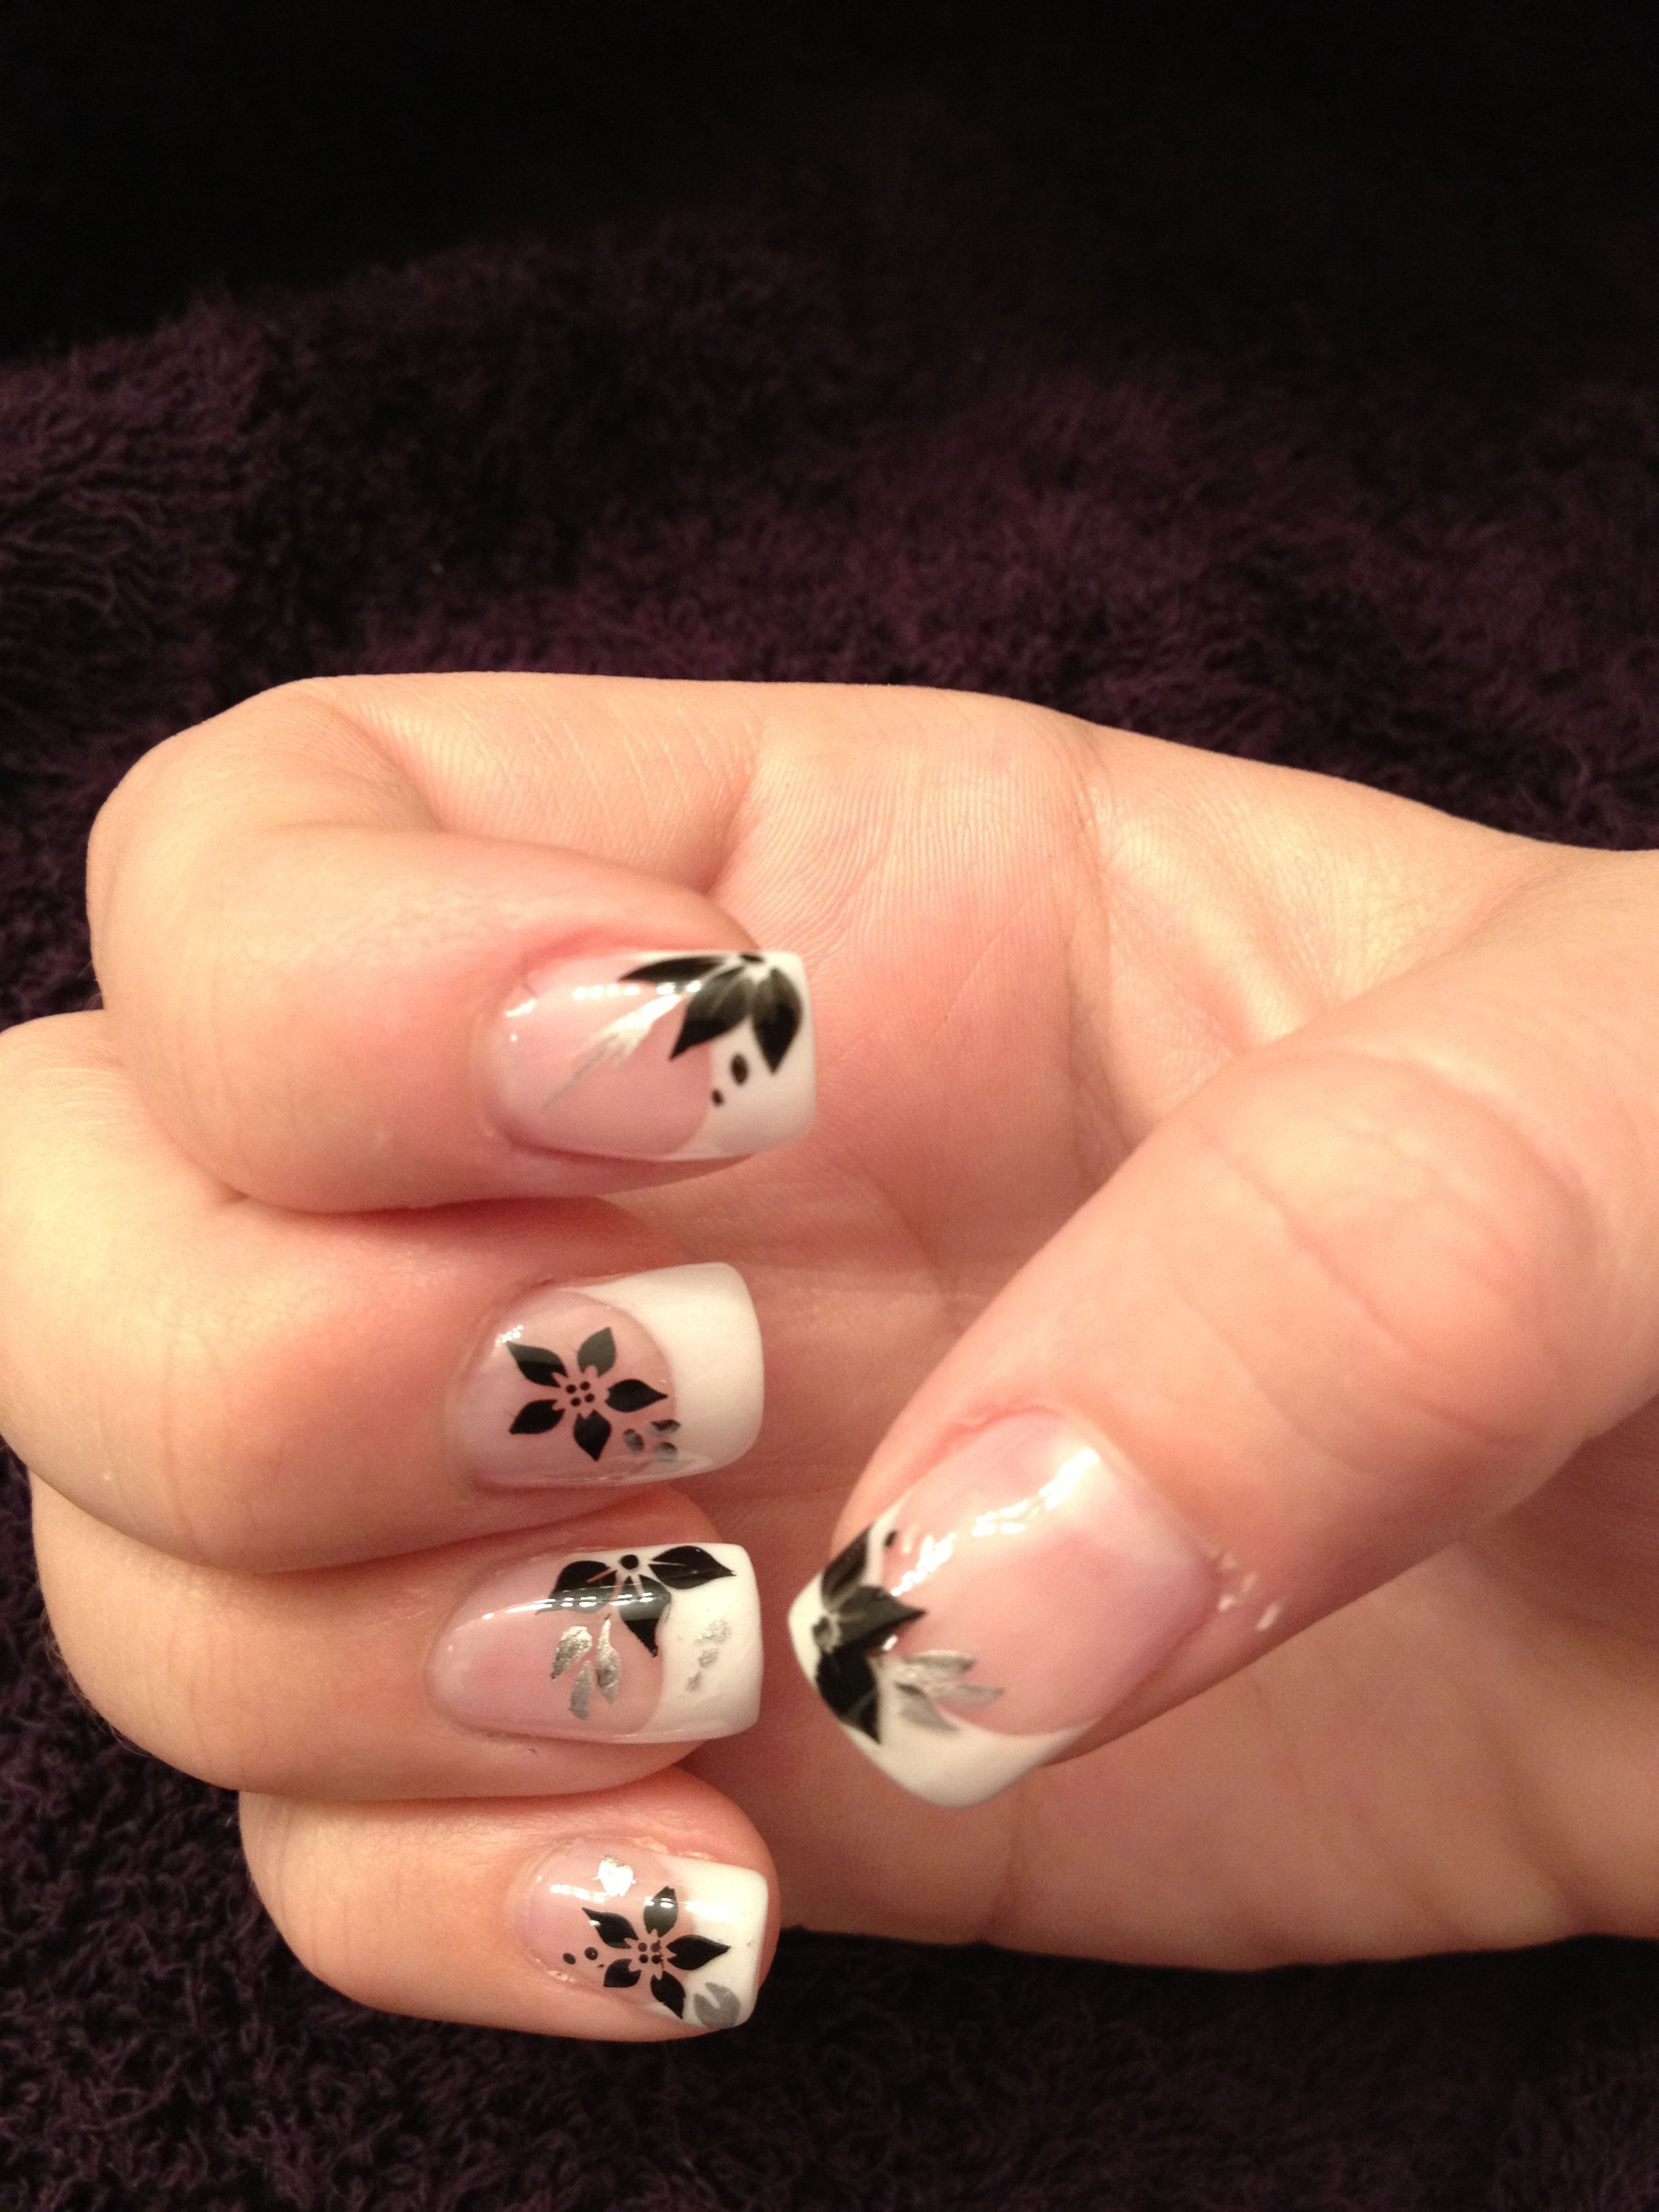 My nails white gel tips with black flowers and silver leaves each